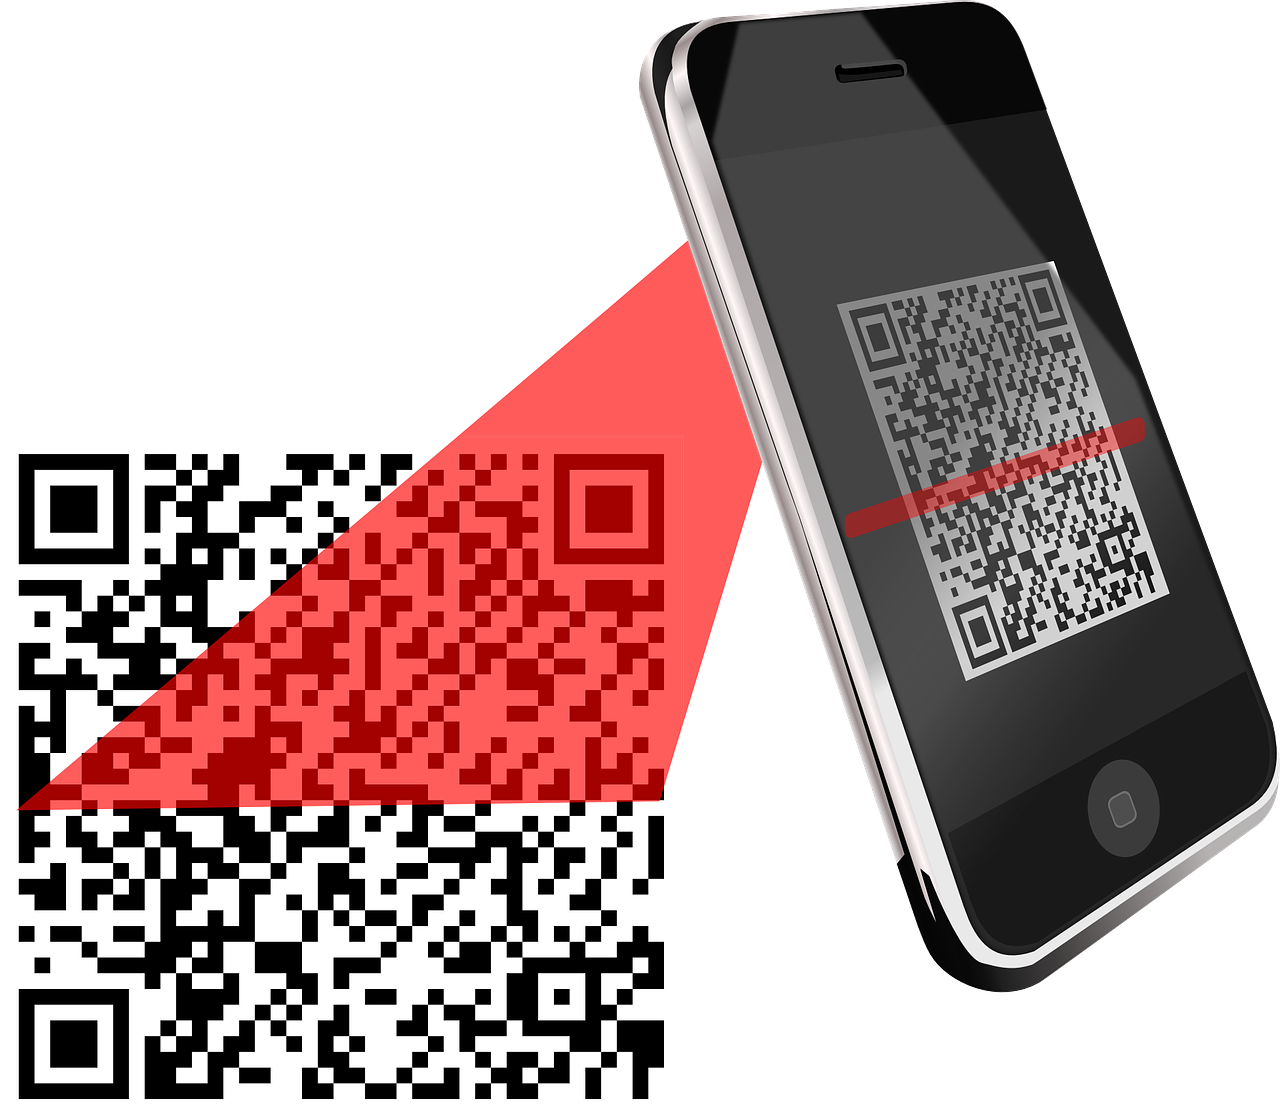 Qr code for App Marketing